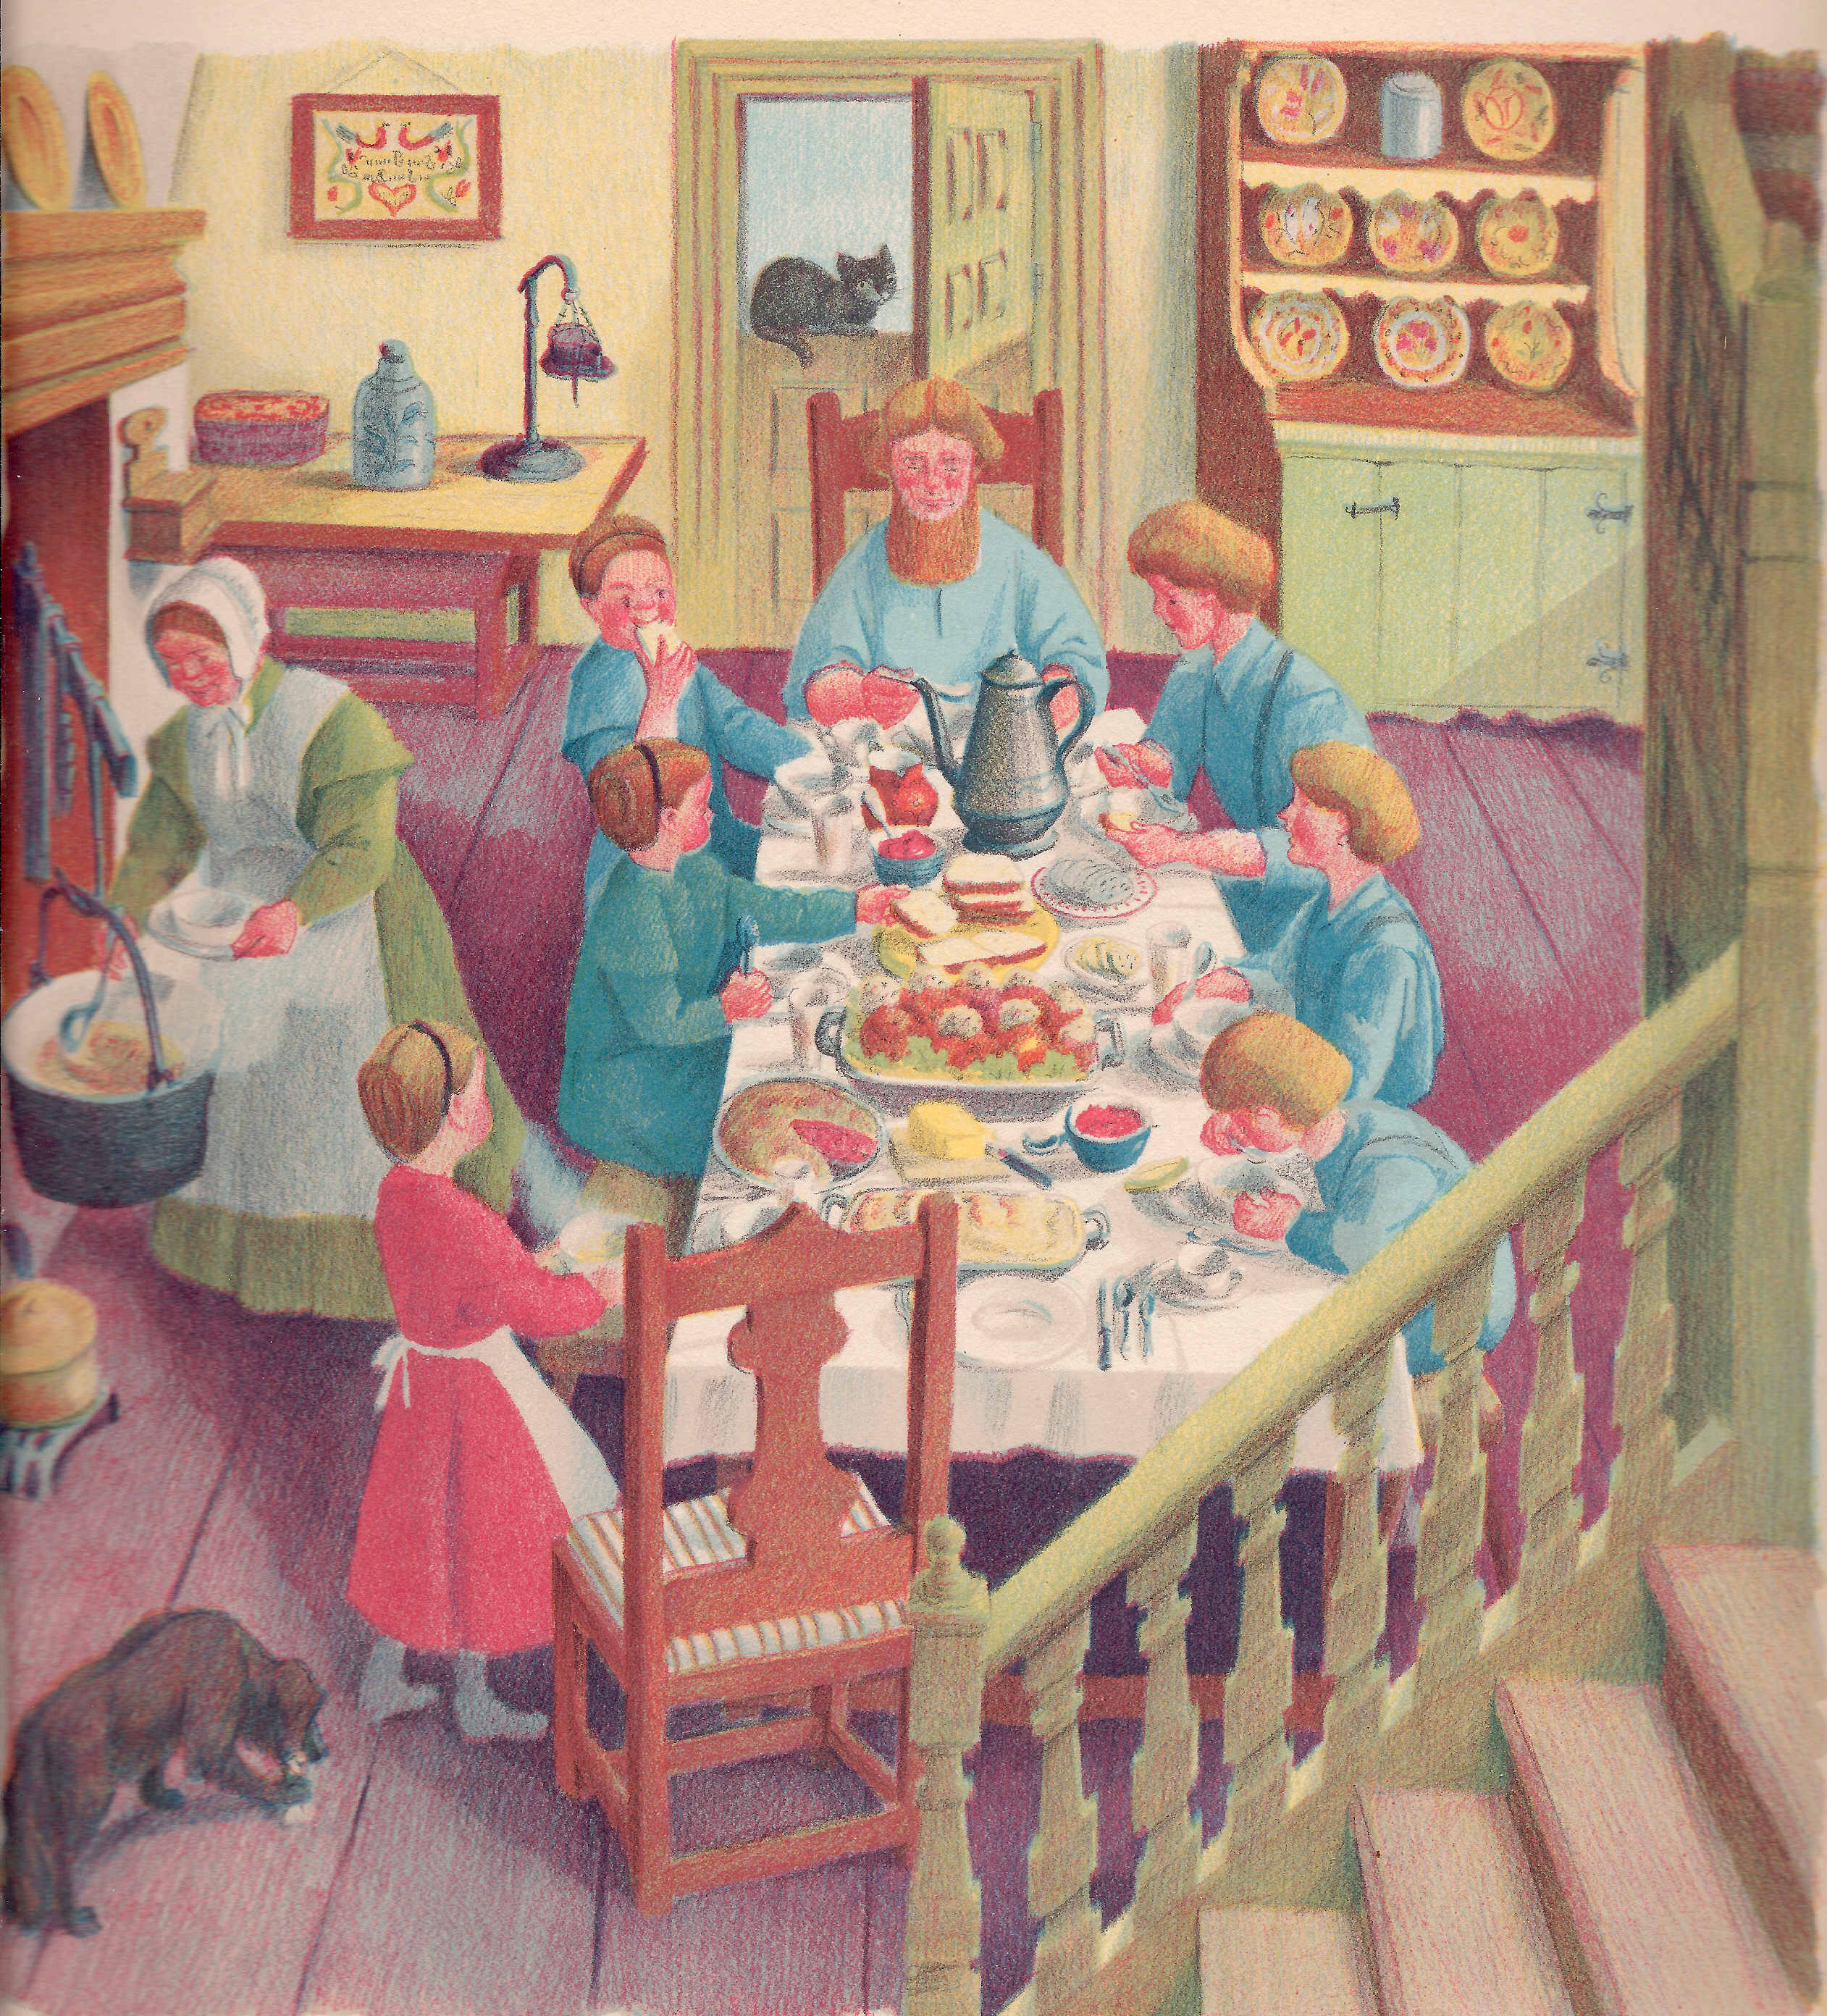 No self-respecting Pennsylvania Dutch family would have eaten near a hot and smoky cooking hearth; the kitchen was in a separate room. This romanticized view of an Amish family meal is from Ann Hark's 1943 children's book, The Story of the Pennsylvania Dutch.